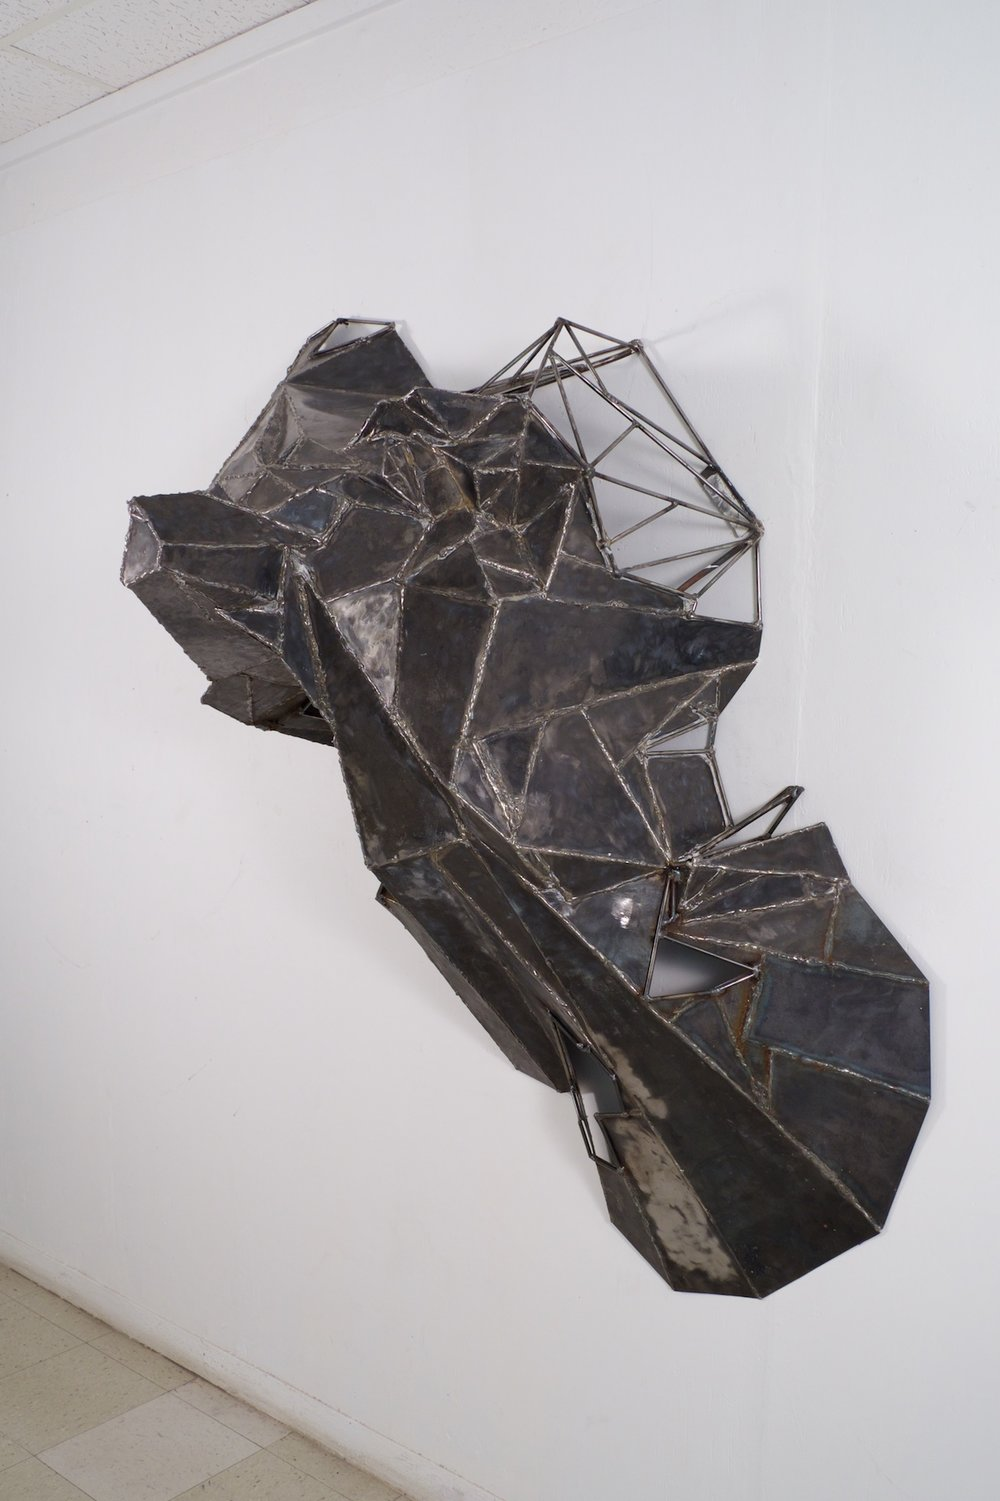 Made at University of Texas at El Paso in Introductory Sculpture, welded steel mountain form, 6x4x3 feet, 2016.